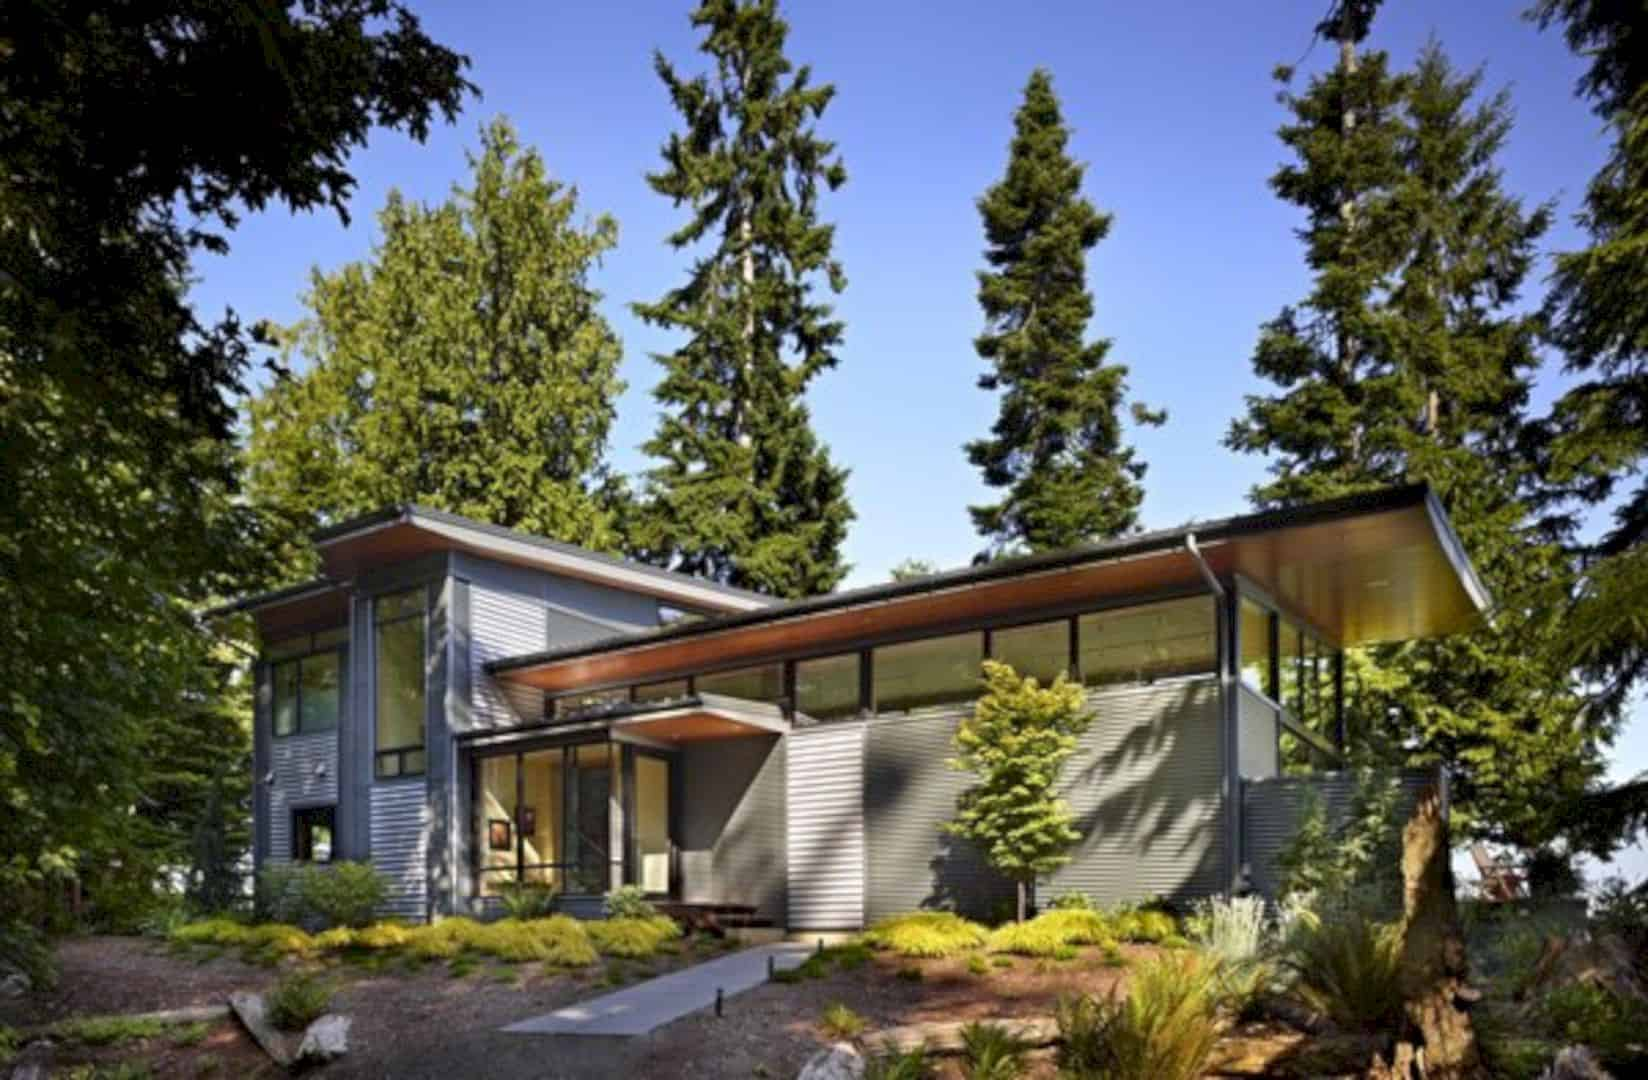 Port Ludlow House A Compact Modern House On A Wooded Waterfront Property 4